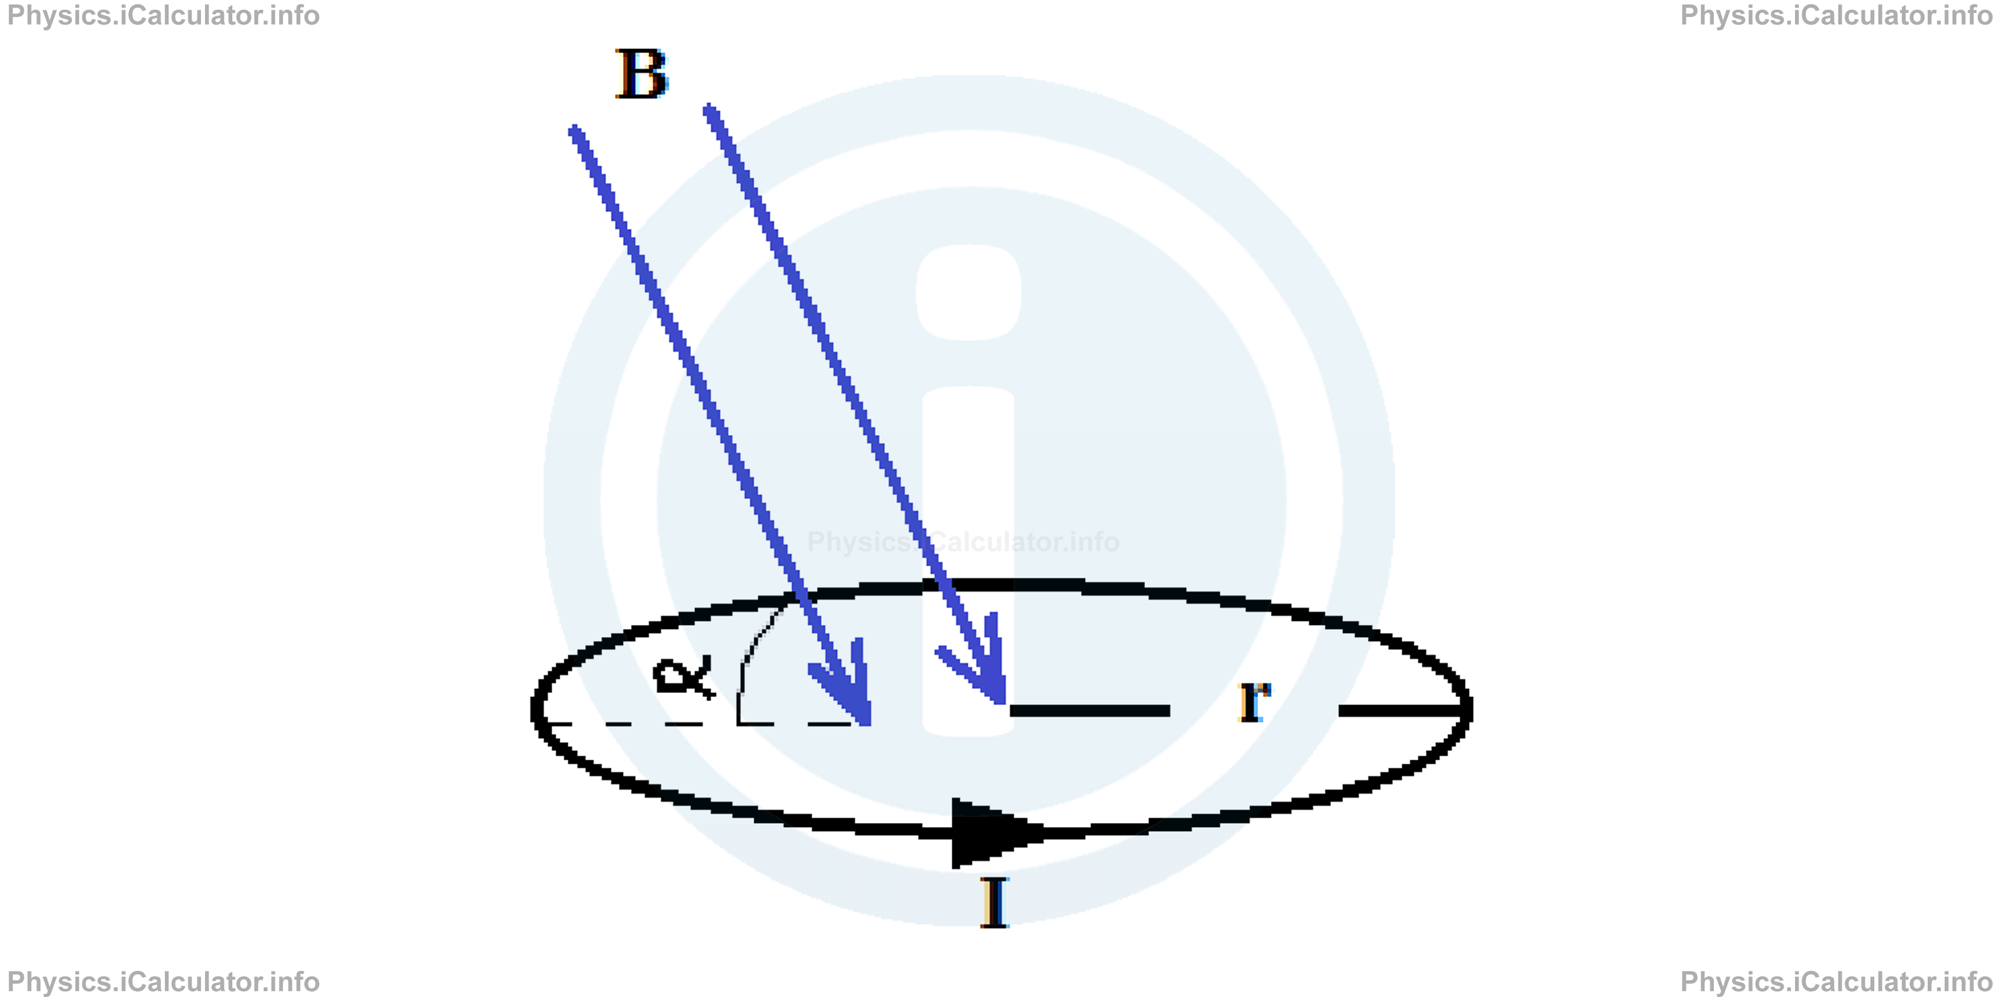 Physics Tutorials: This image provides visual information for the physics tutorial Magnetic Dipole Moment